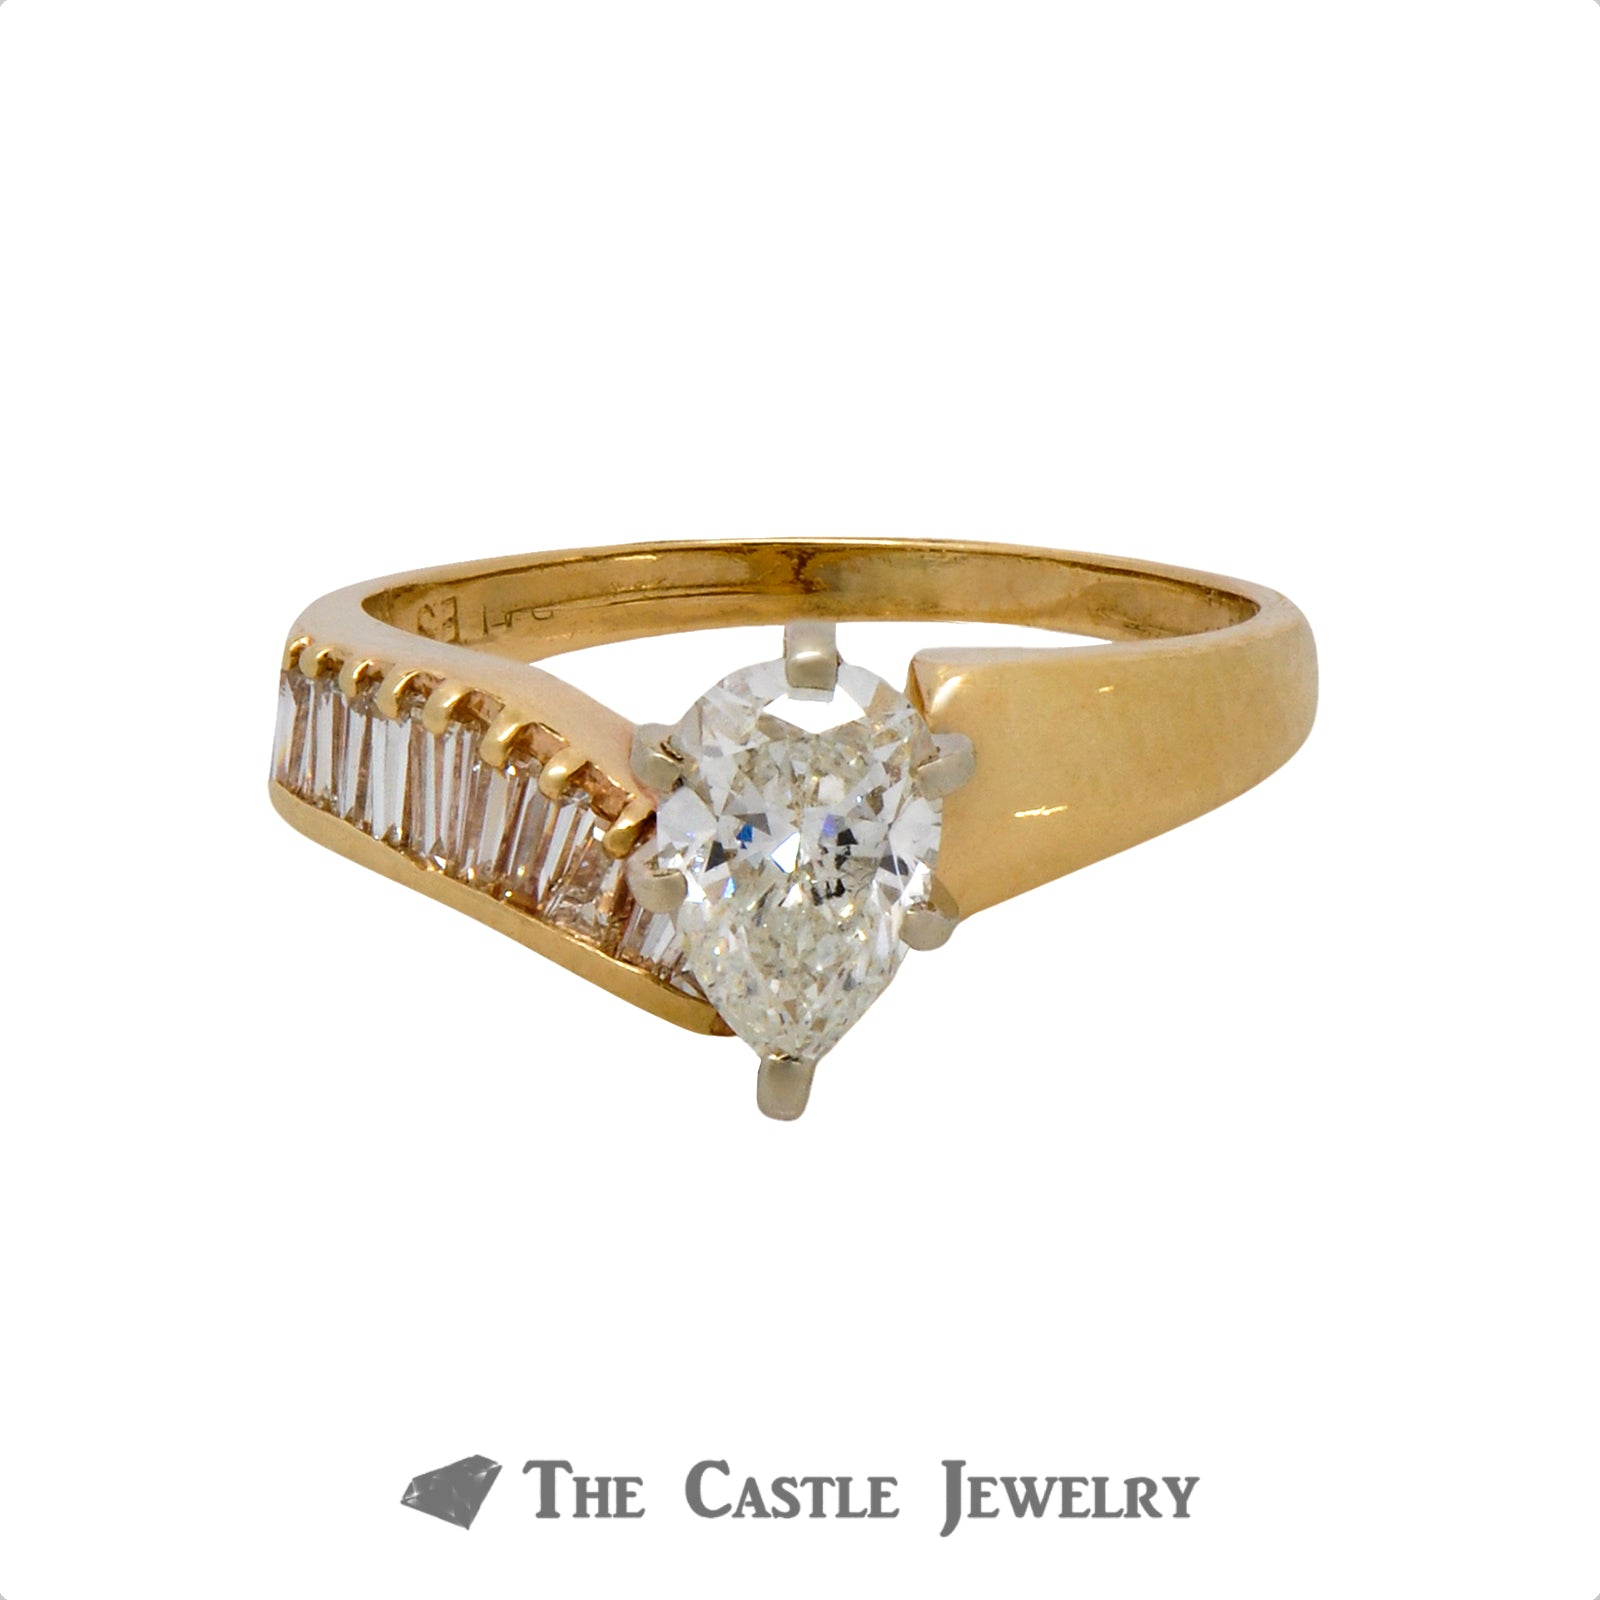 Pear Cut Diamond Engagement Ring with Asymmetrical Baguette Cut Diamond Accents in 14k Yellow Gold